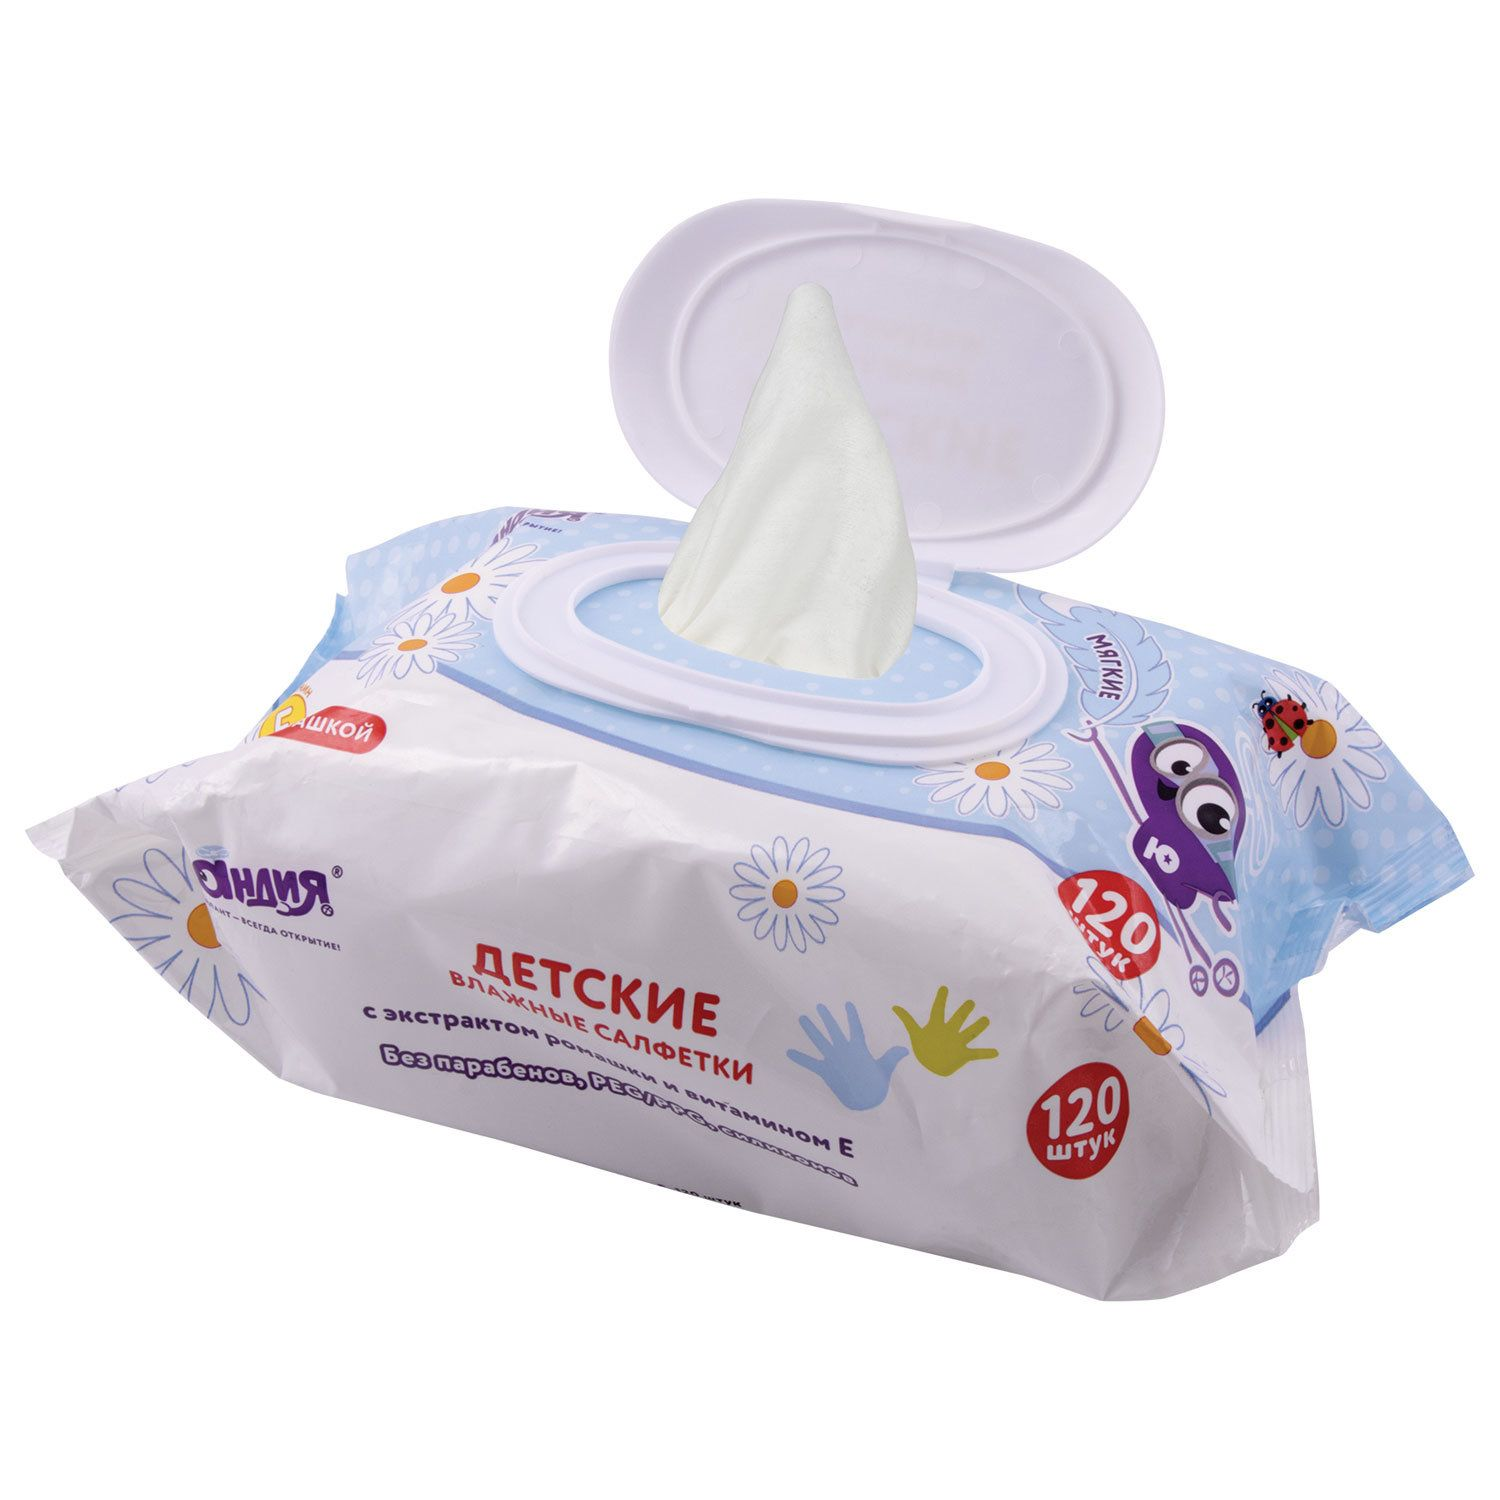 UNLAND / Wet wipes for children, universal, cleaning, valve cover, 120 pcs.